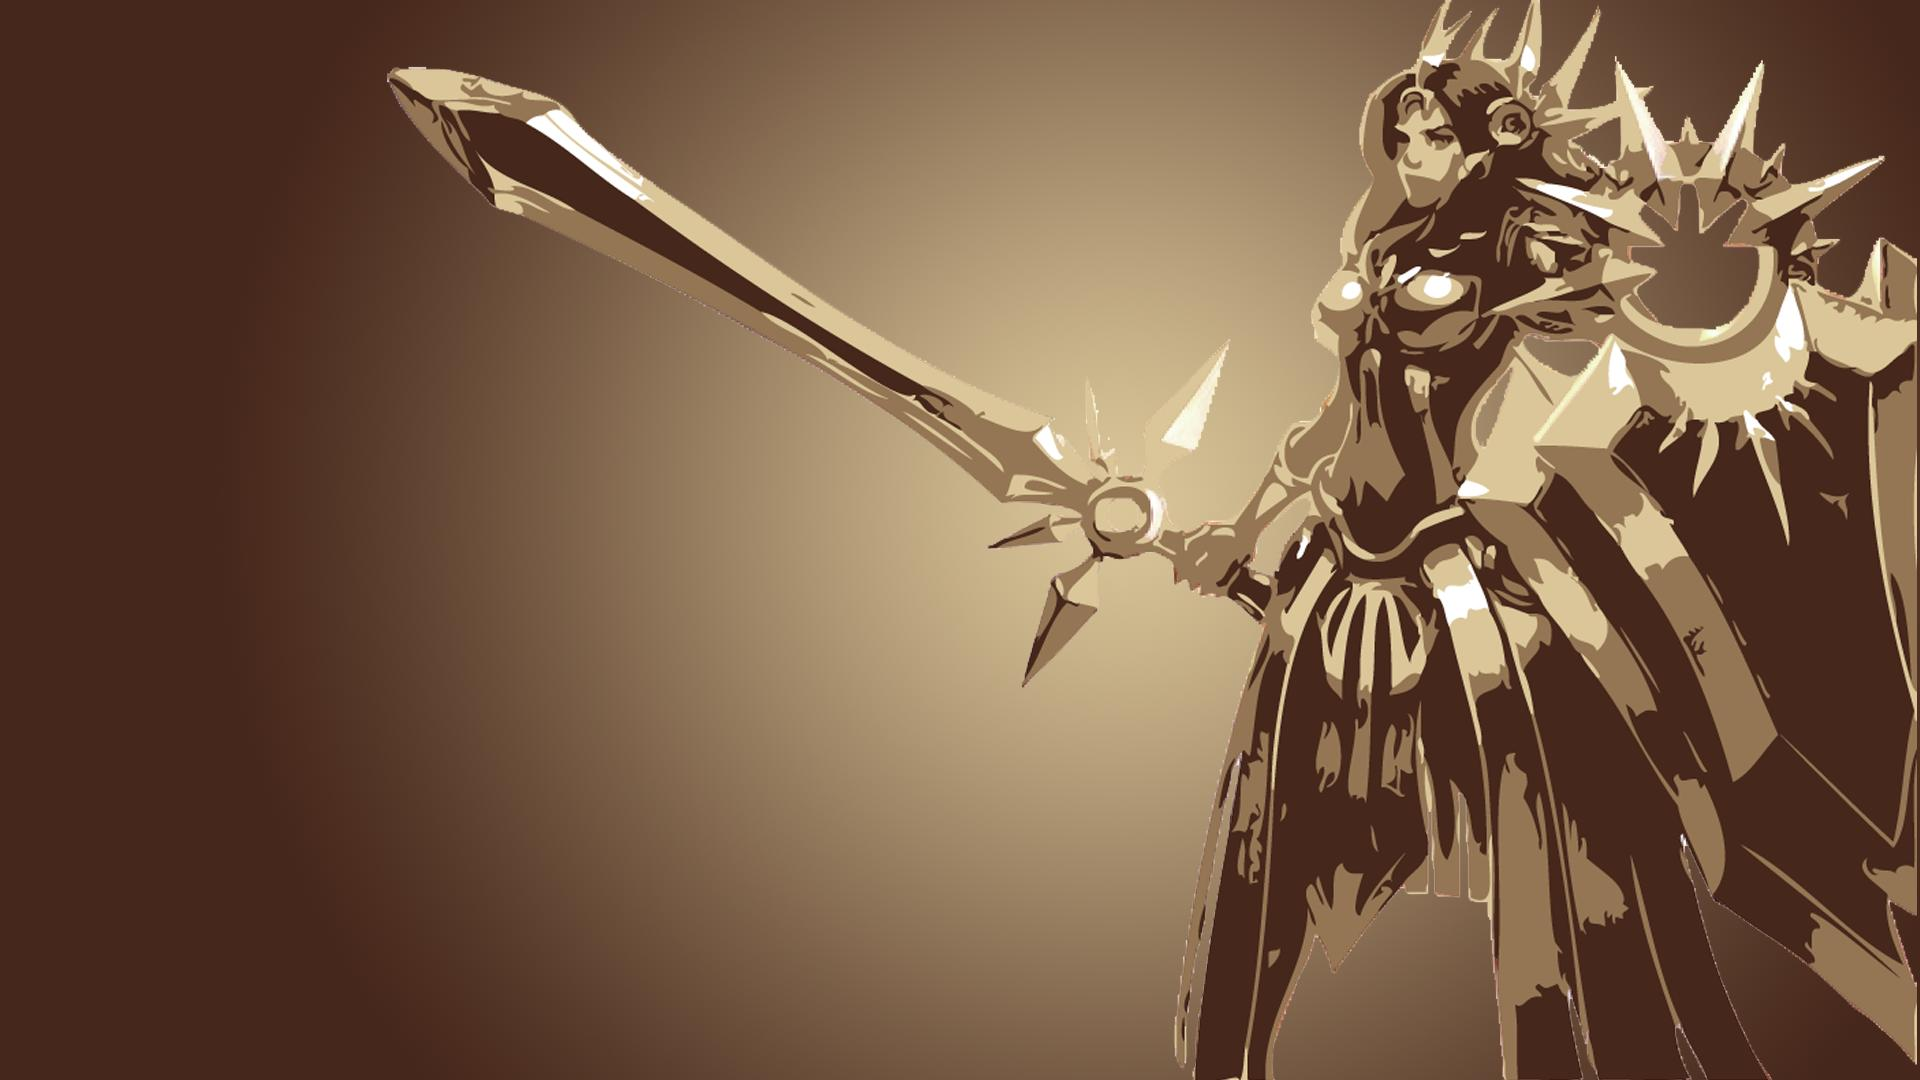 leona wallpaper fan art - photo #5